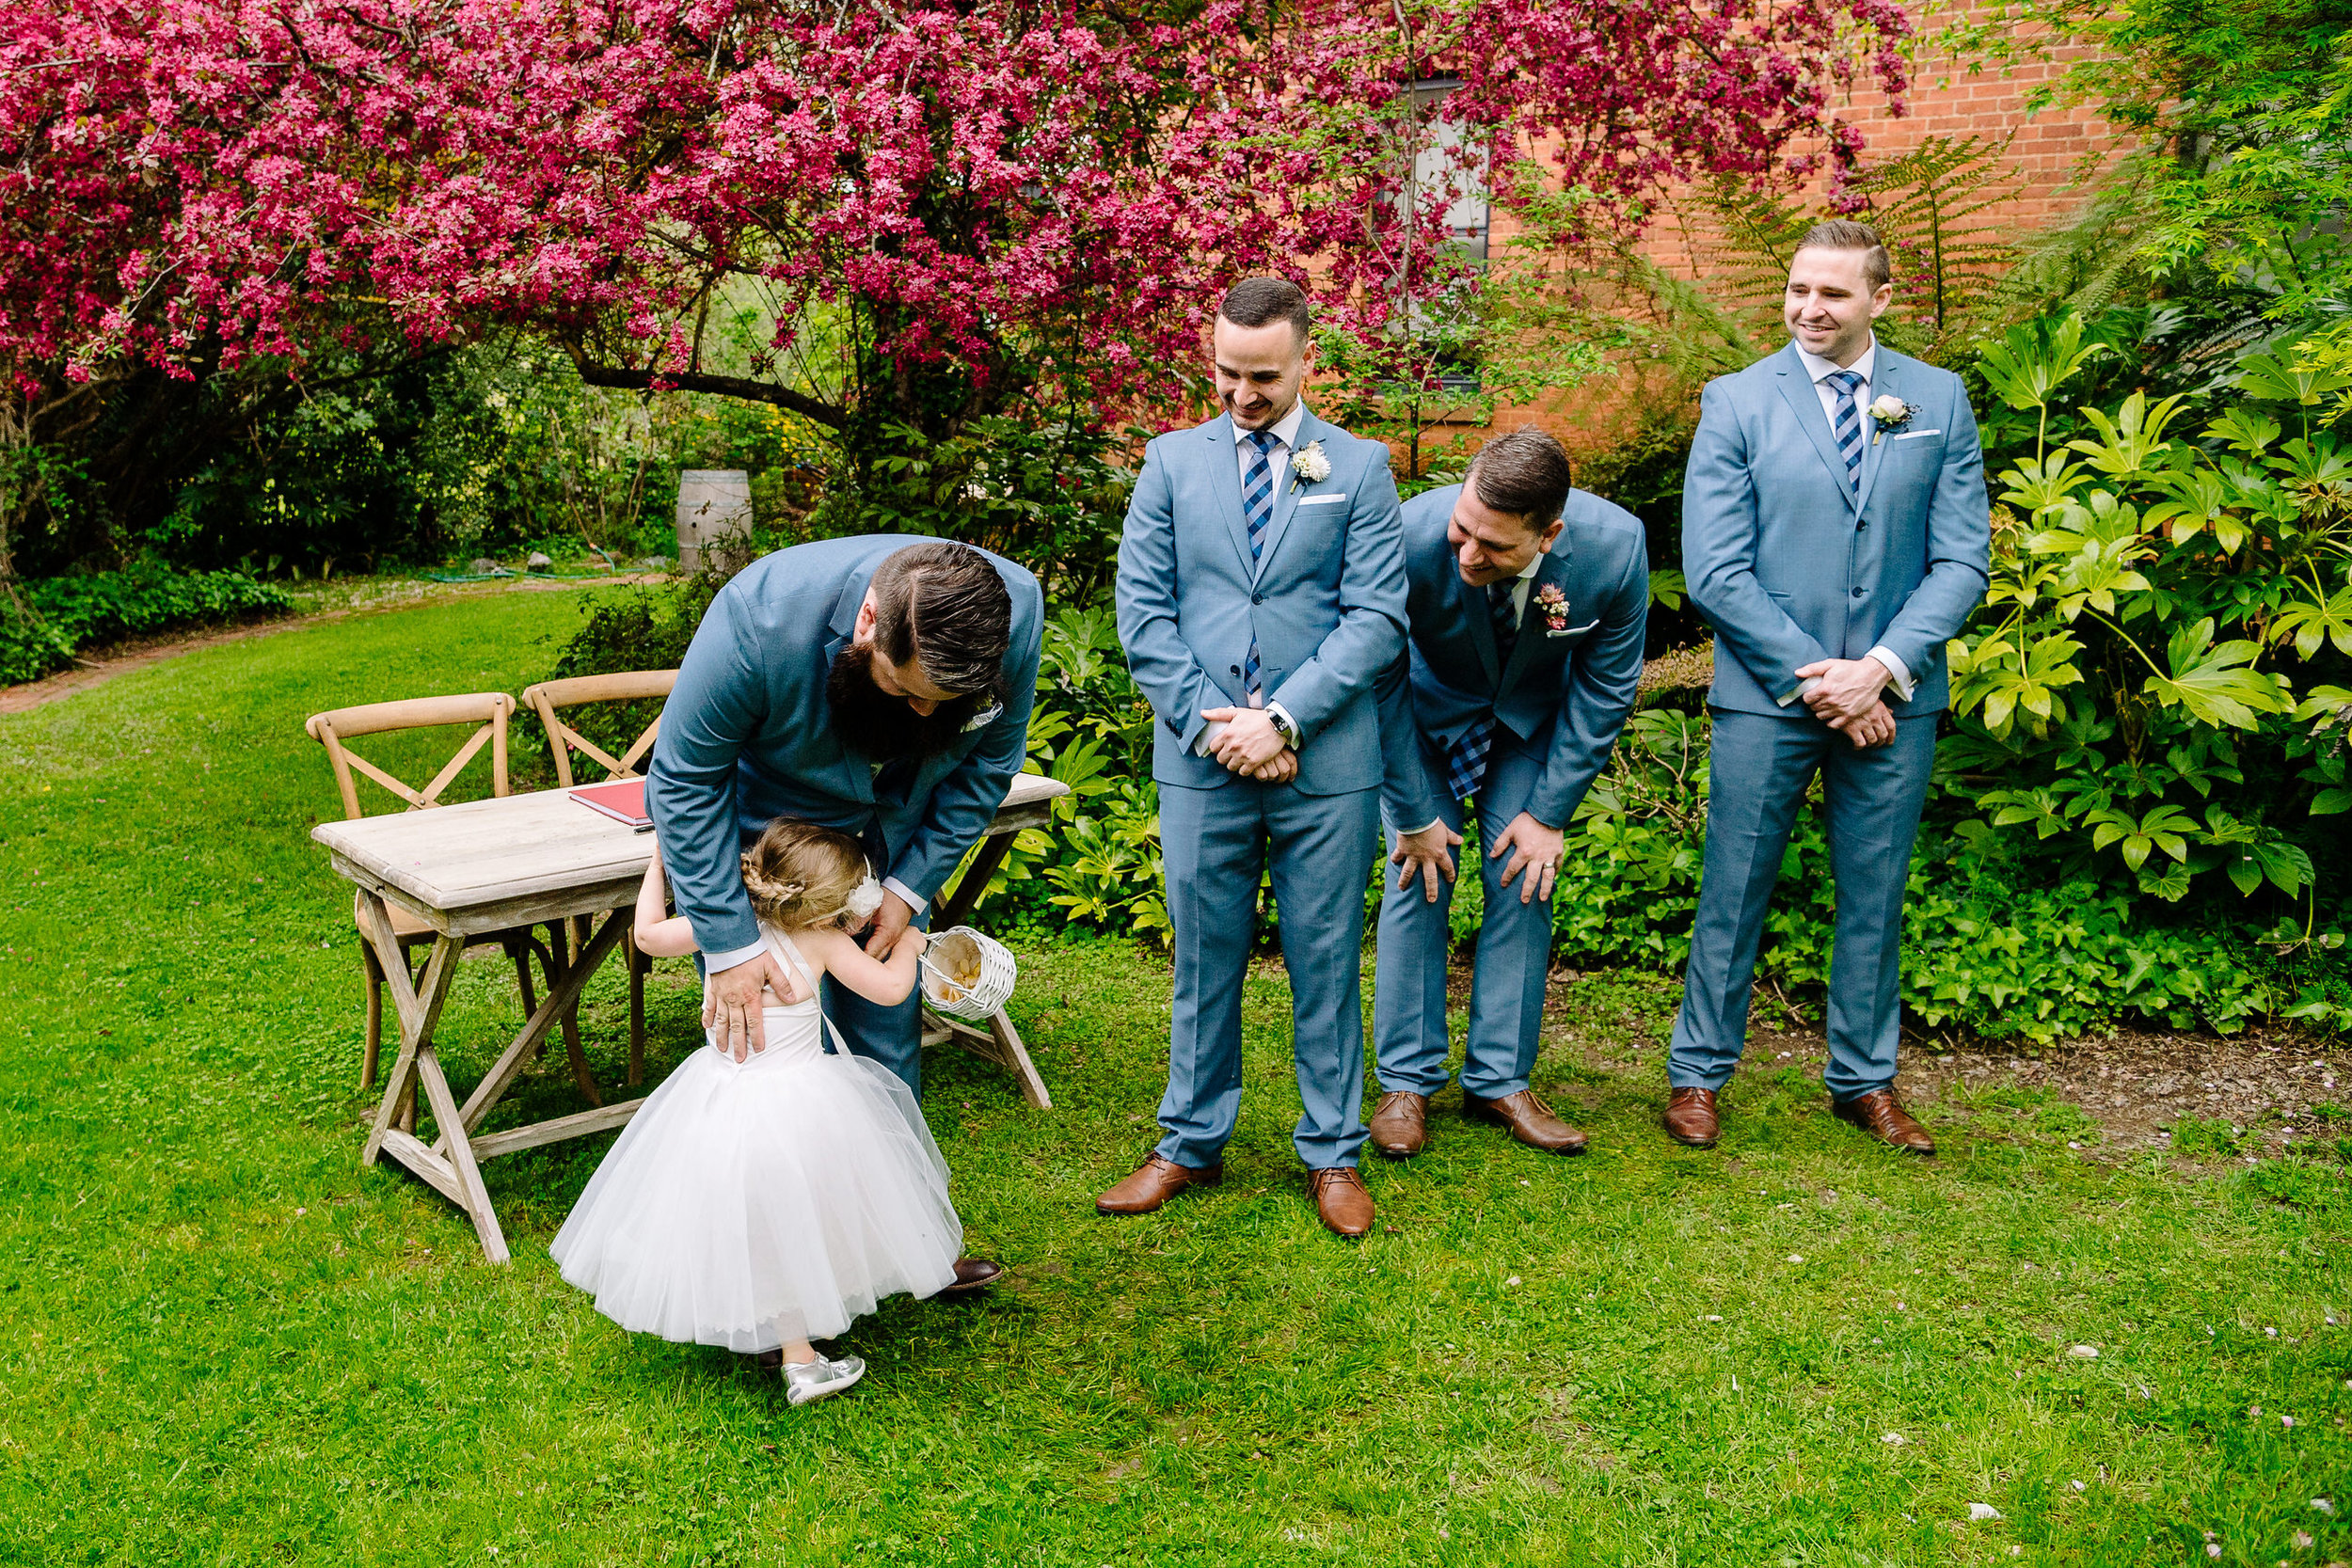 Chateau_Dore_Wedding_Photography_Justin_and_Jim-99.JPG